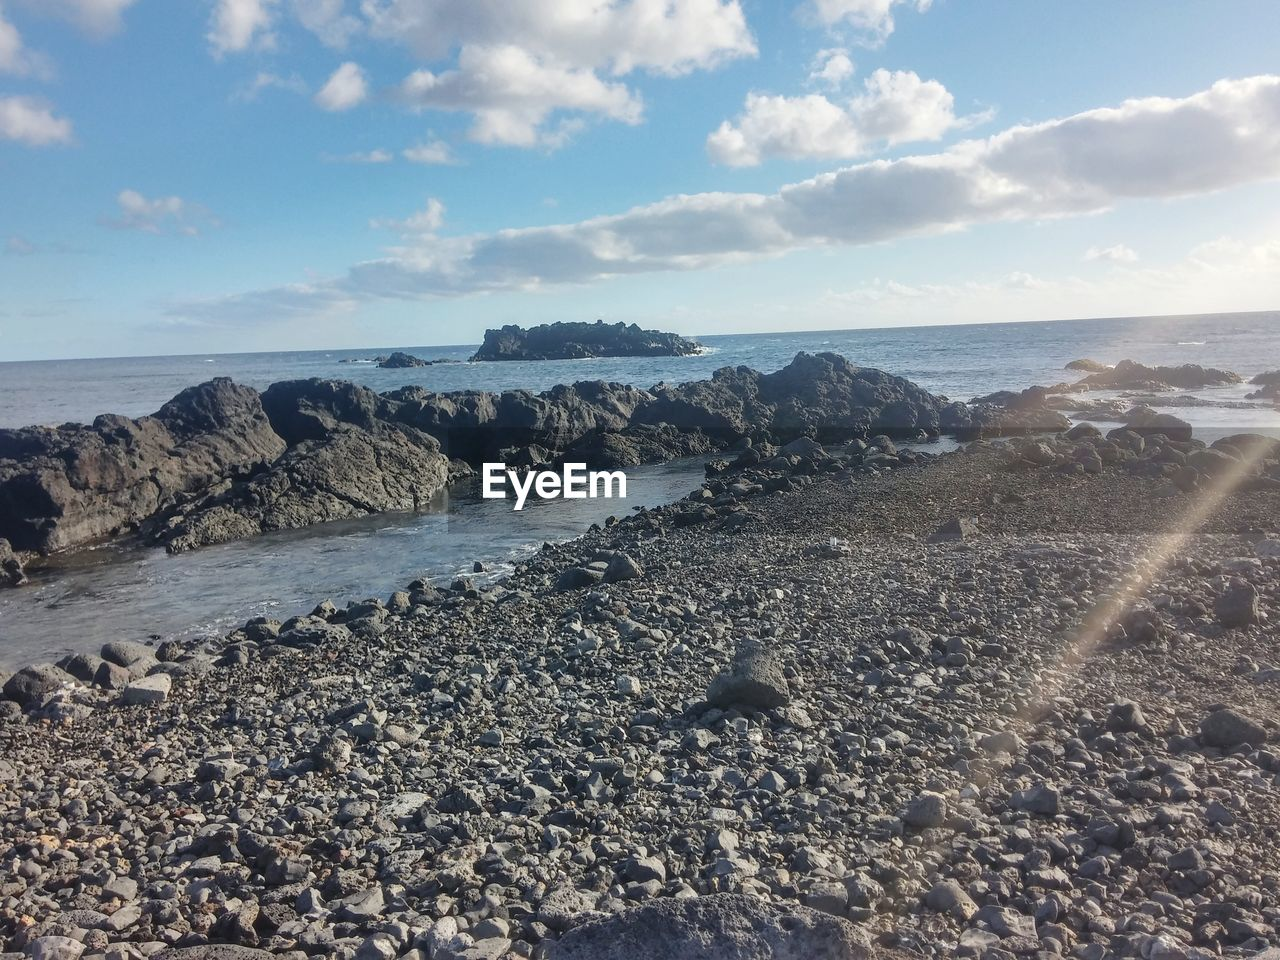 sea, water, nature, horizon over water, beauty in nature, sky, scenics, tranquility, tranquil scene, rock - object, outdoors, no people, beach, day, cloud - sky, pebble beach